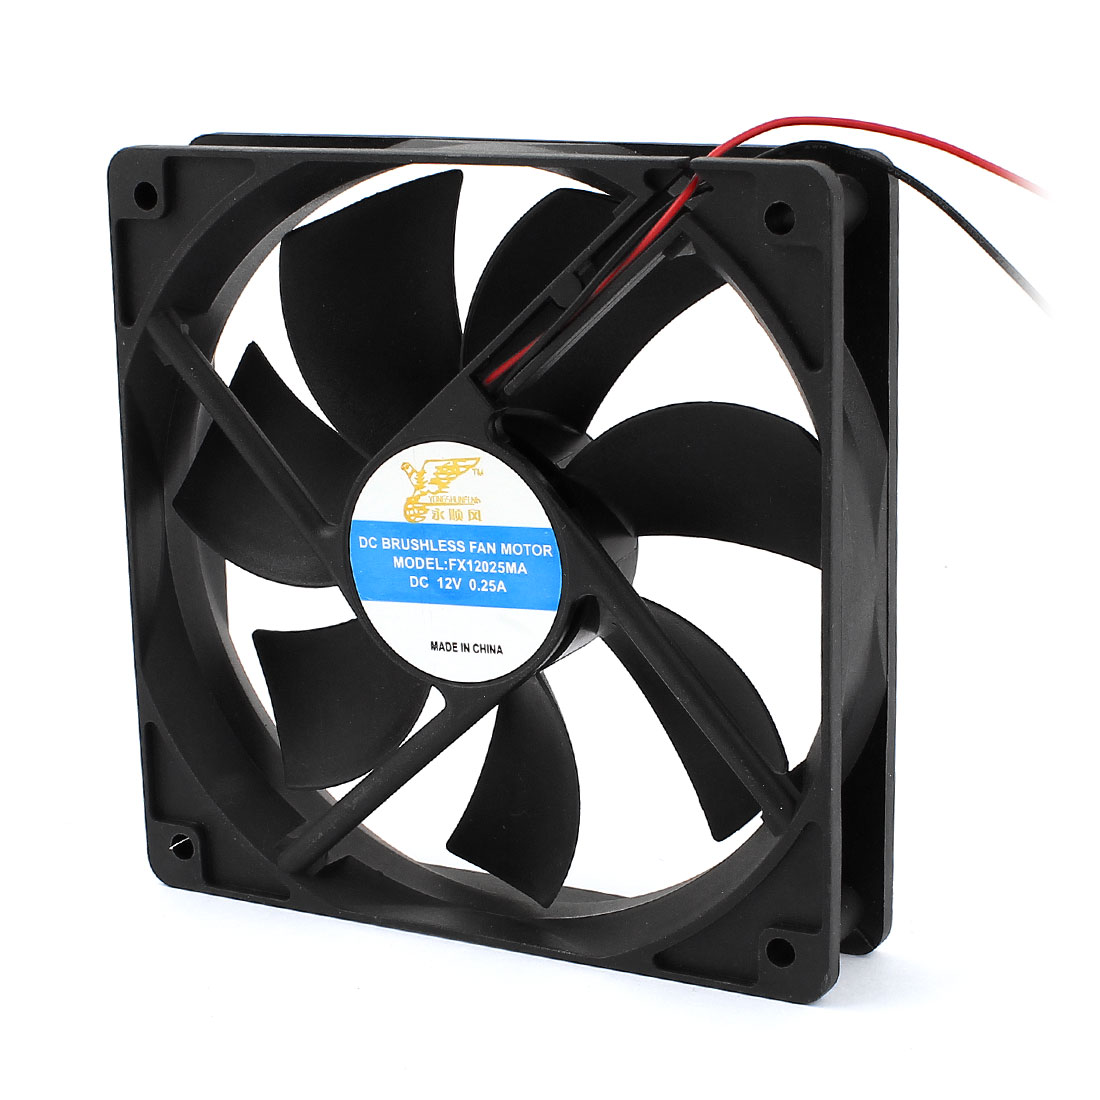 DC 12V 0.25A 120mmx25mm 2 Wires Brushless Computer Case Cooling Fan Cooler Black